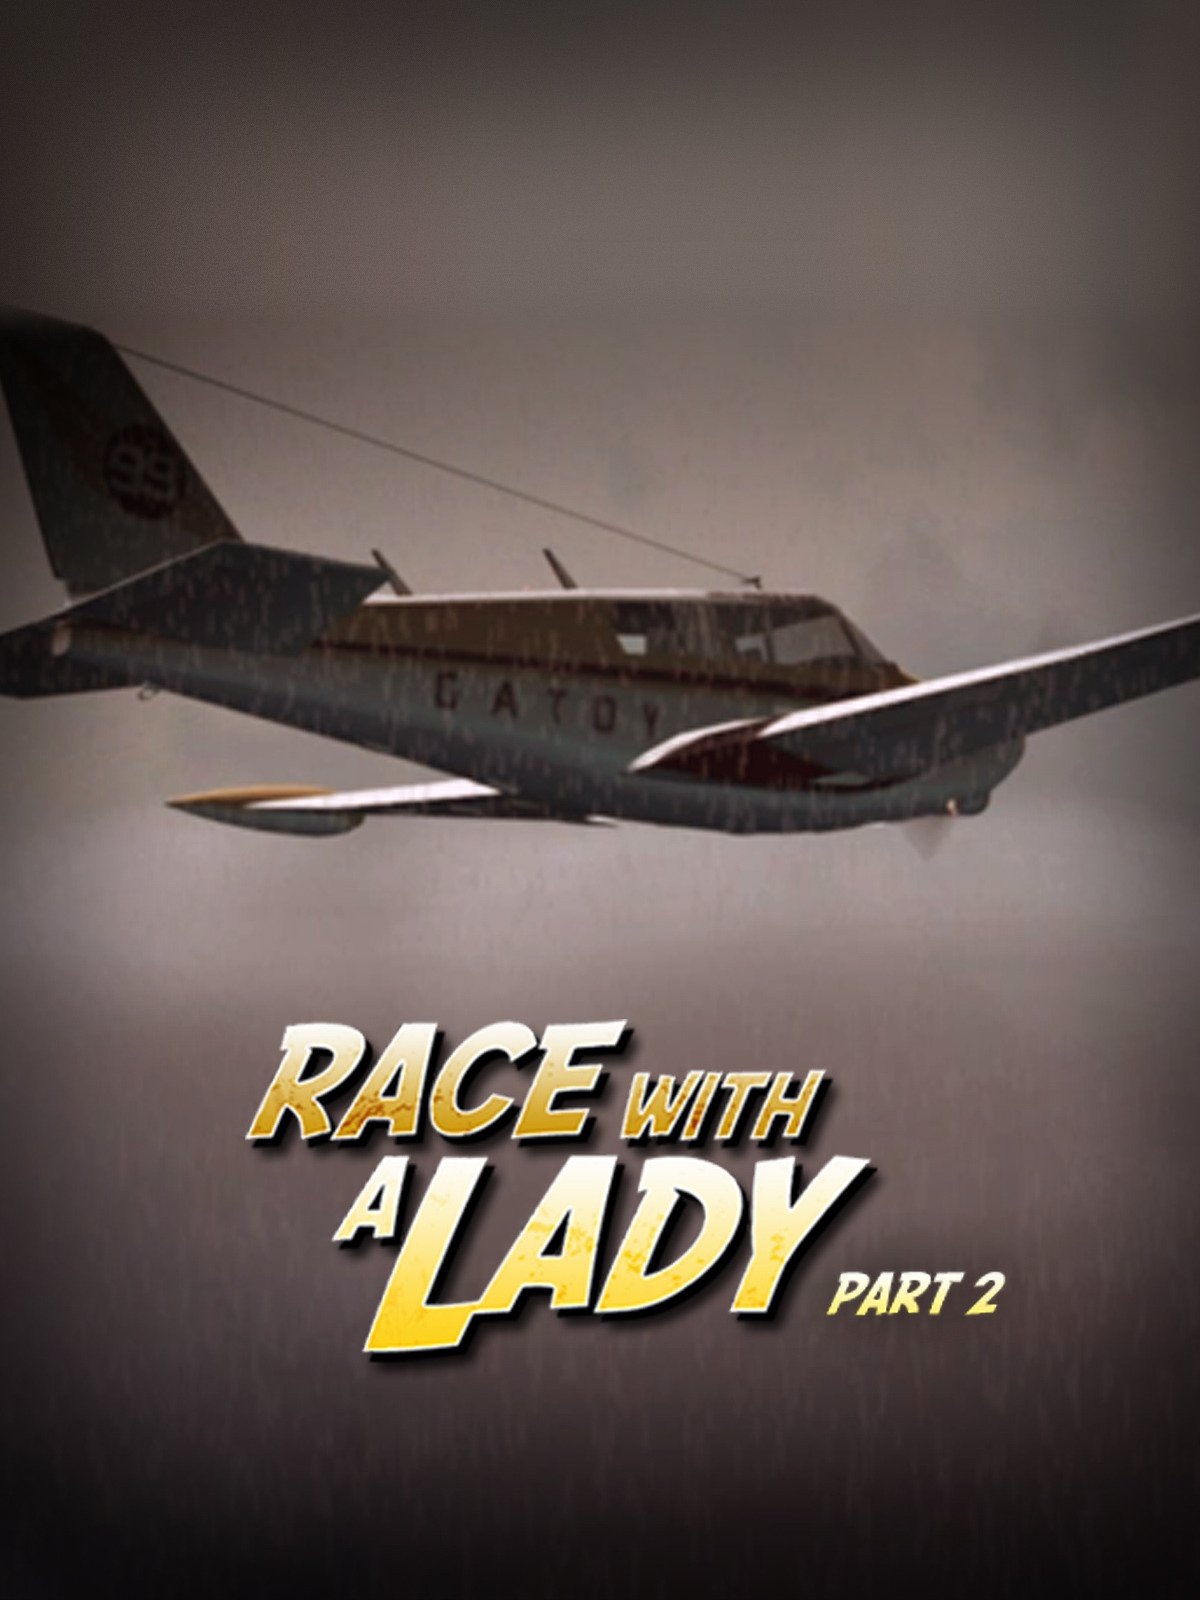 Race With A Lady Part 2